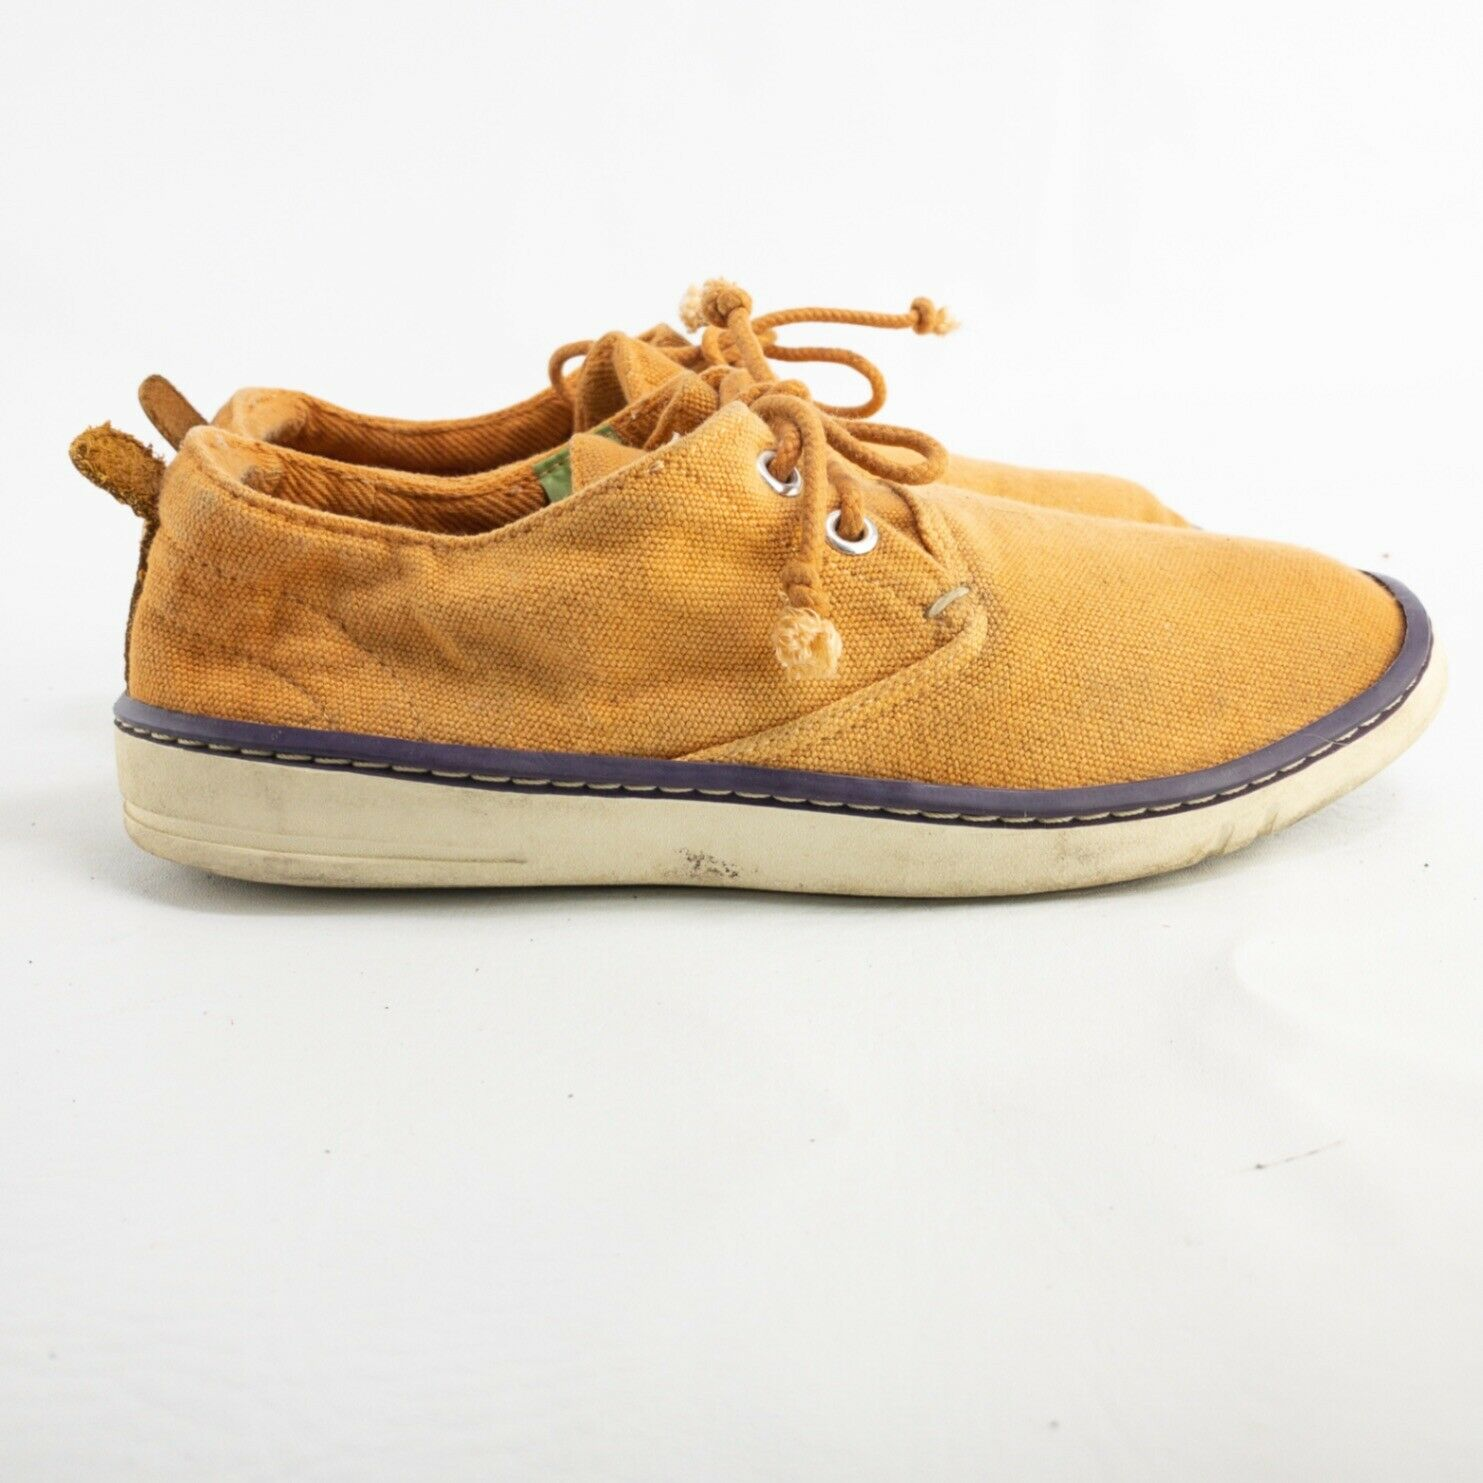 Timberland Earthkeepers Womens Orange Round Toe Lace Up Sneaker Shoes Size 6.5 M